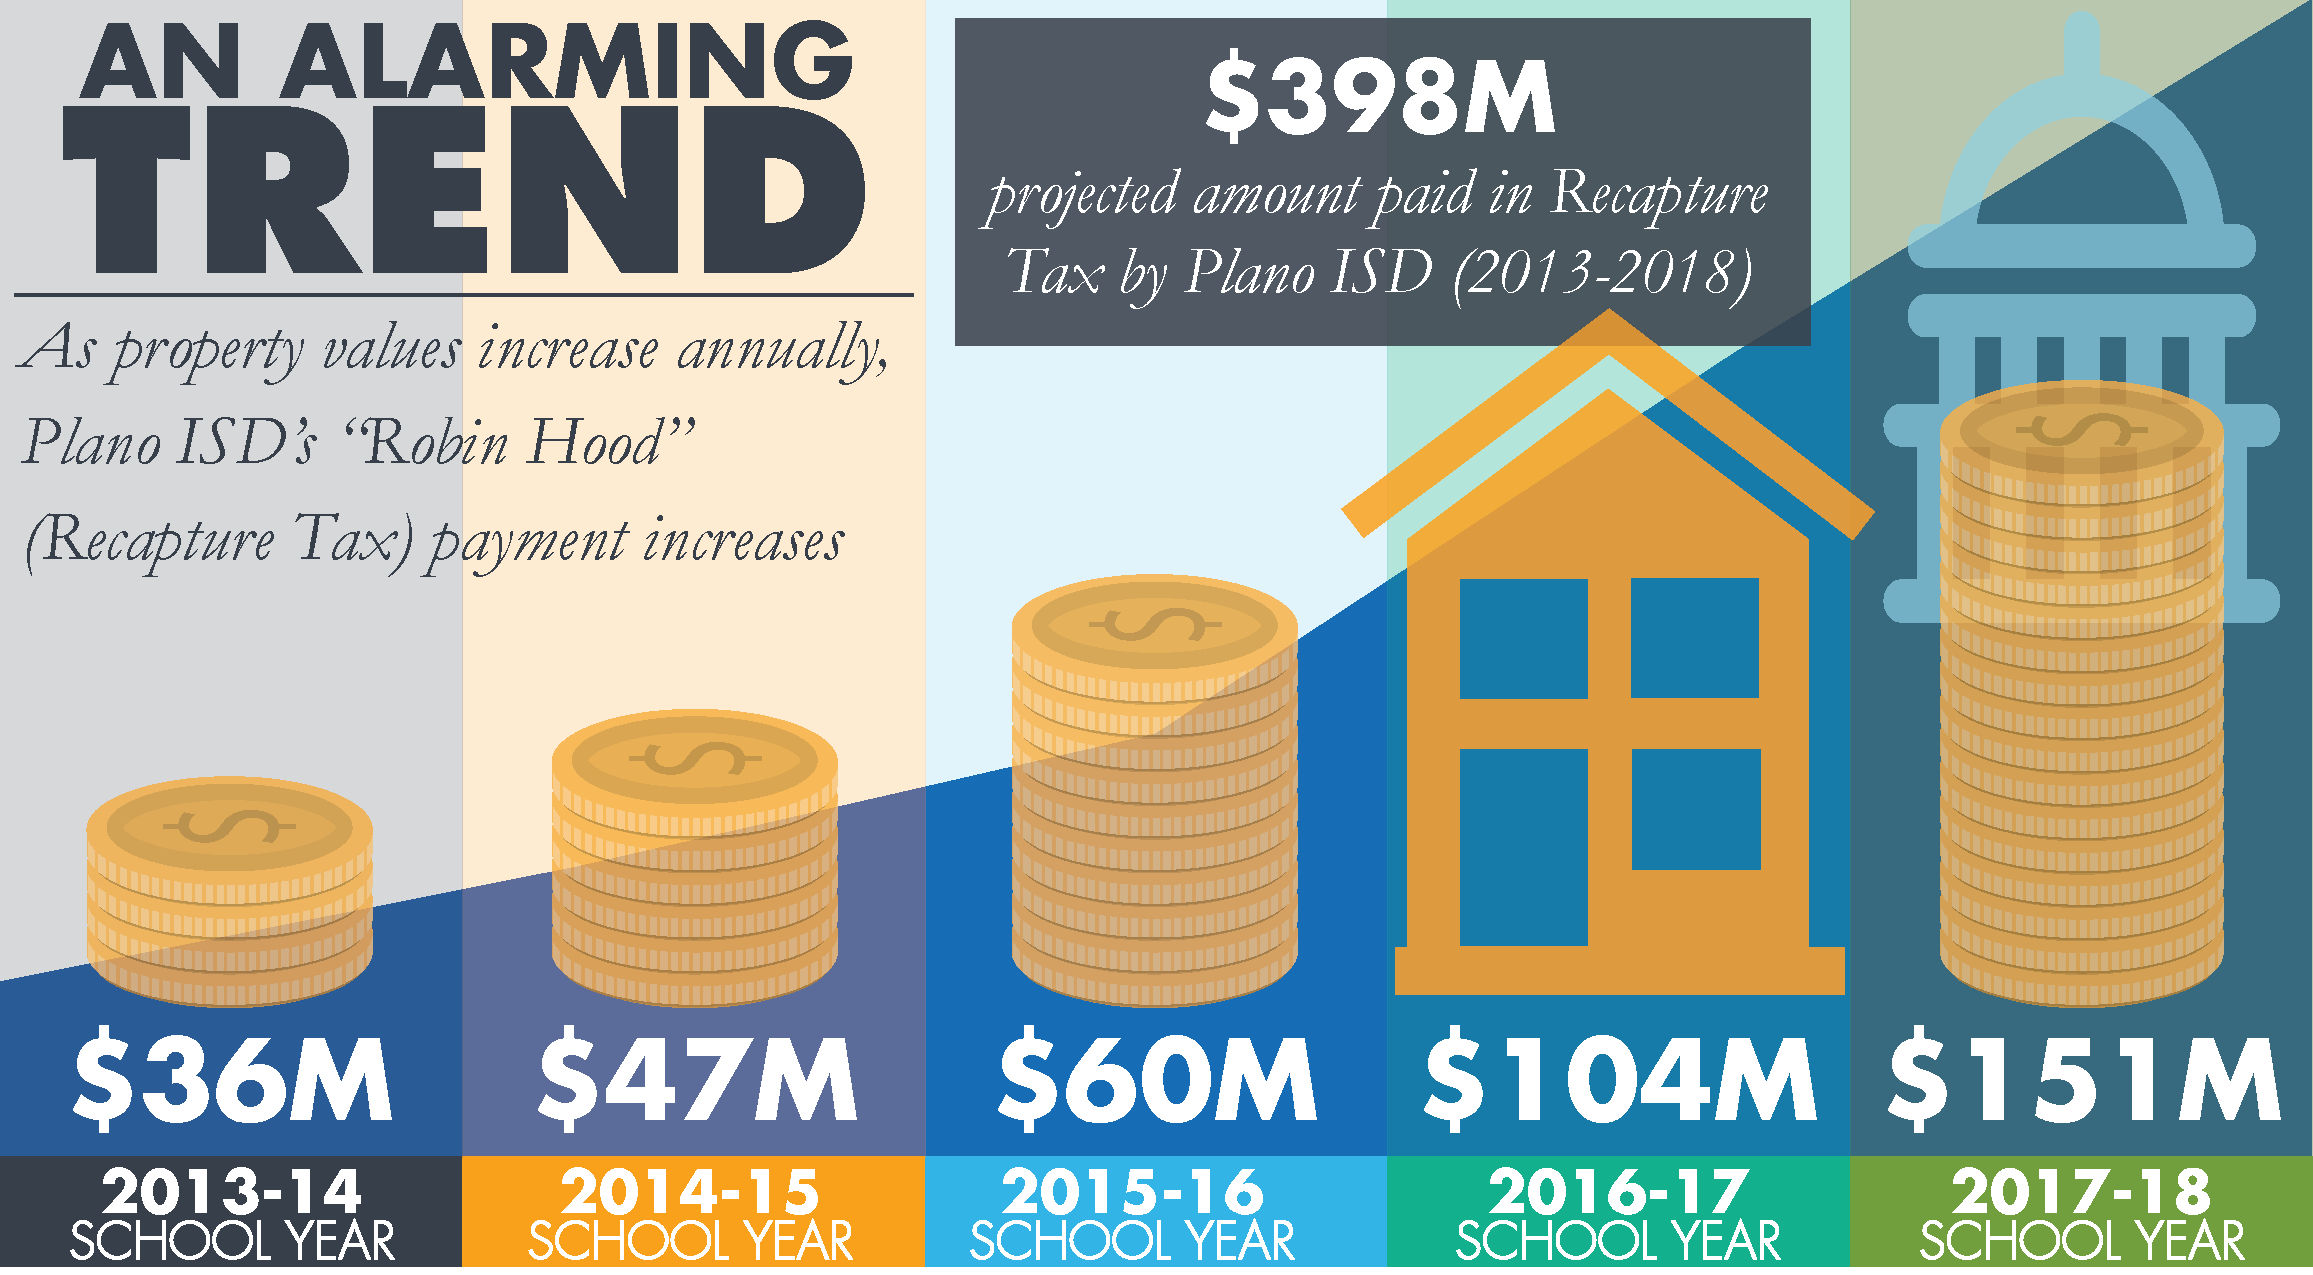 "An alarming trend. $398M projected amount paid in Recaputre Tax by Plano ISD (2013-2018).    As property values increase annually, Plano ISD's ""Robin Hood"" (Recaputre Tax) payment increases. $36M, 2013-14 school year; $47M, 2014-15 school year; $60M, 2015-16 school year; $104M, 2016-17 school year; $151M, 2017-18 school year."